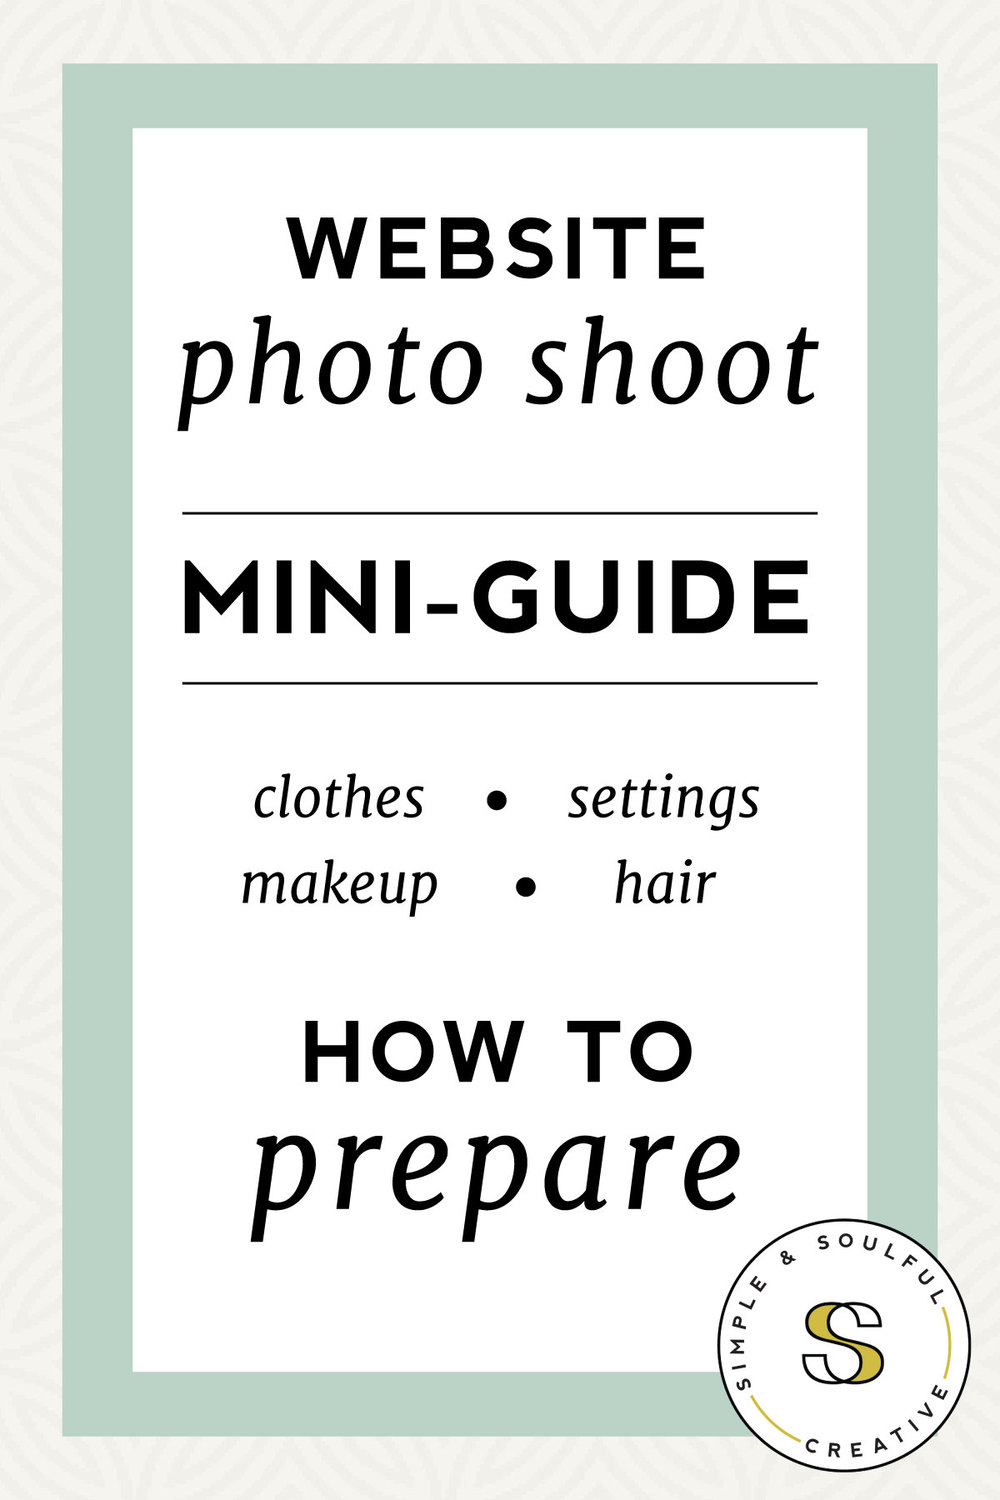 A free mini-guide to help you prepare for your next website photoshoot. Hair, makeup, settings, lighting and more!